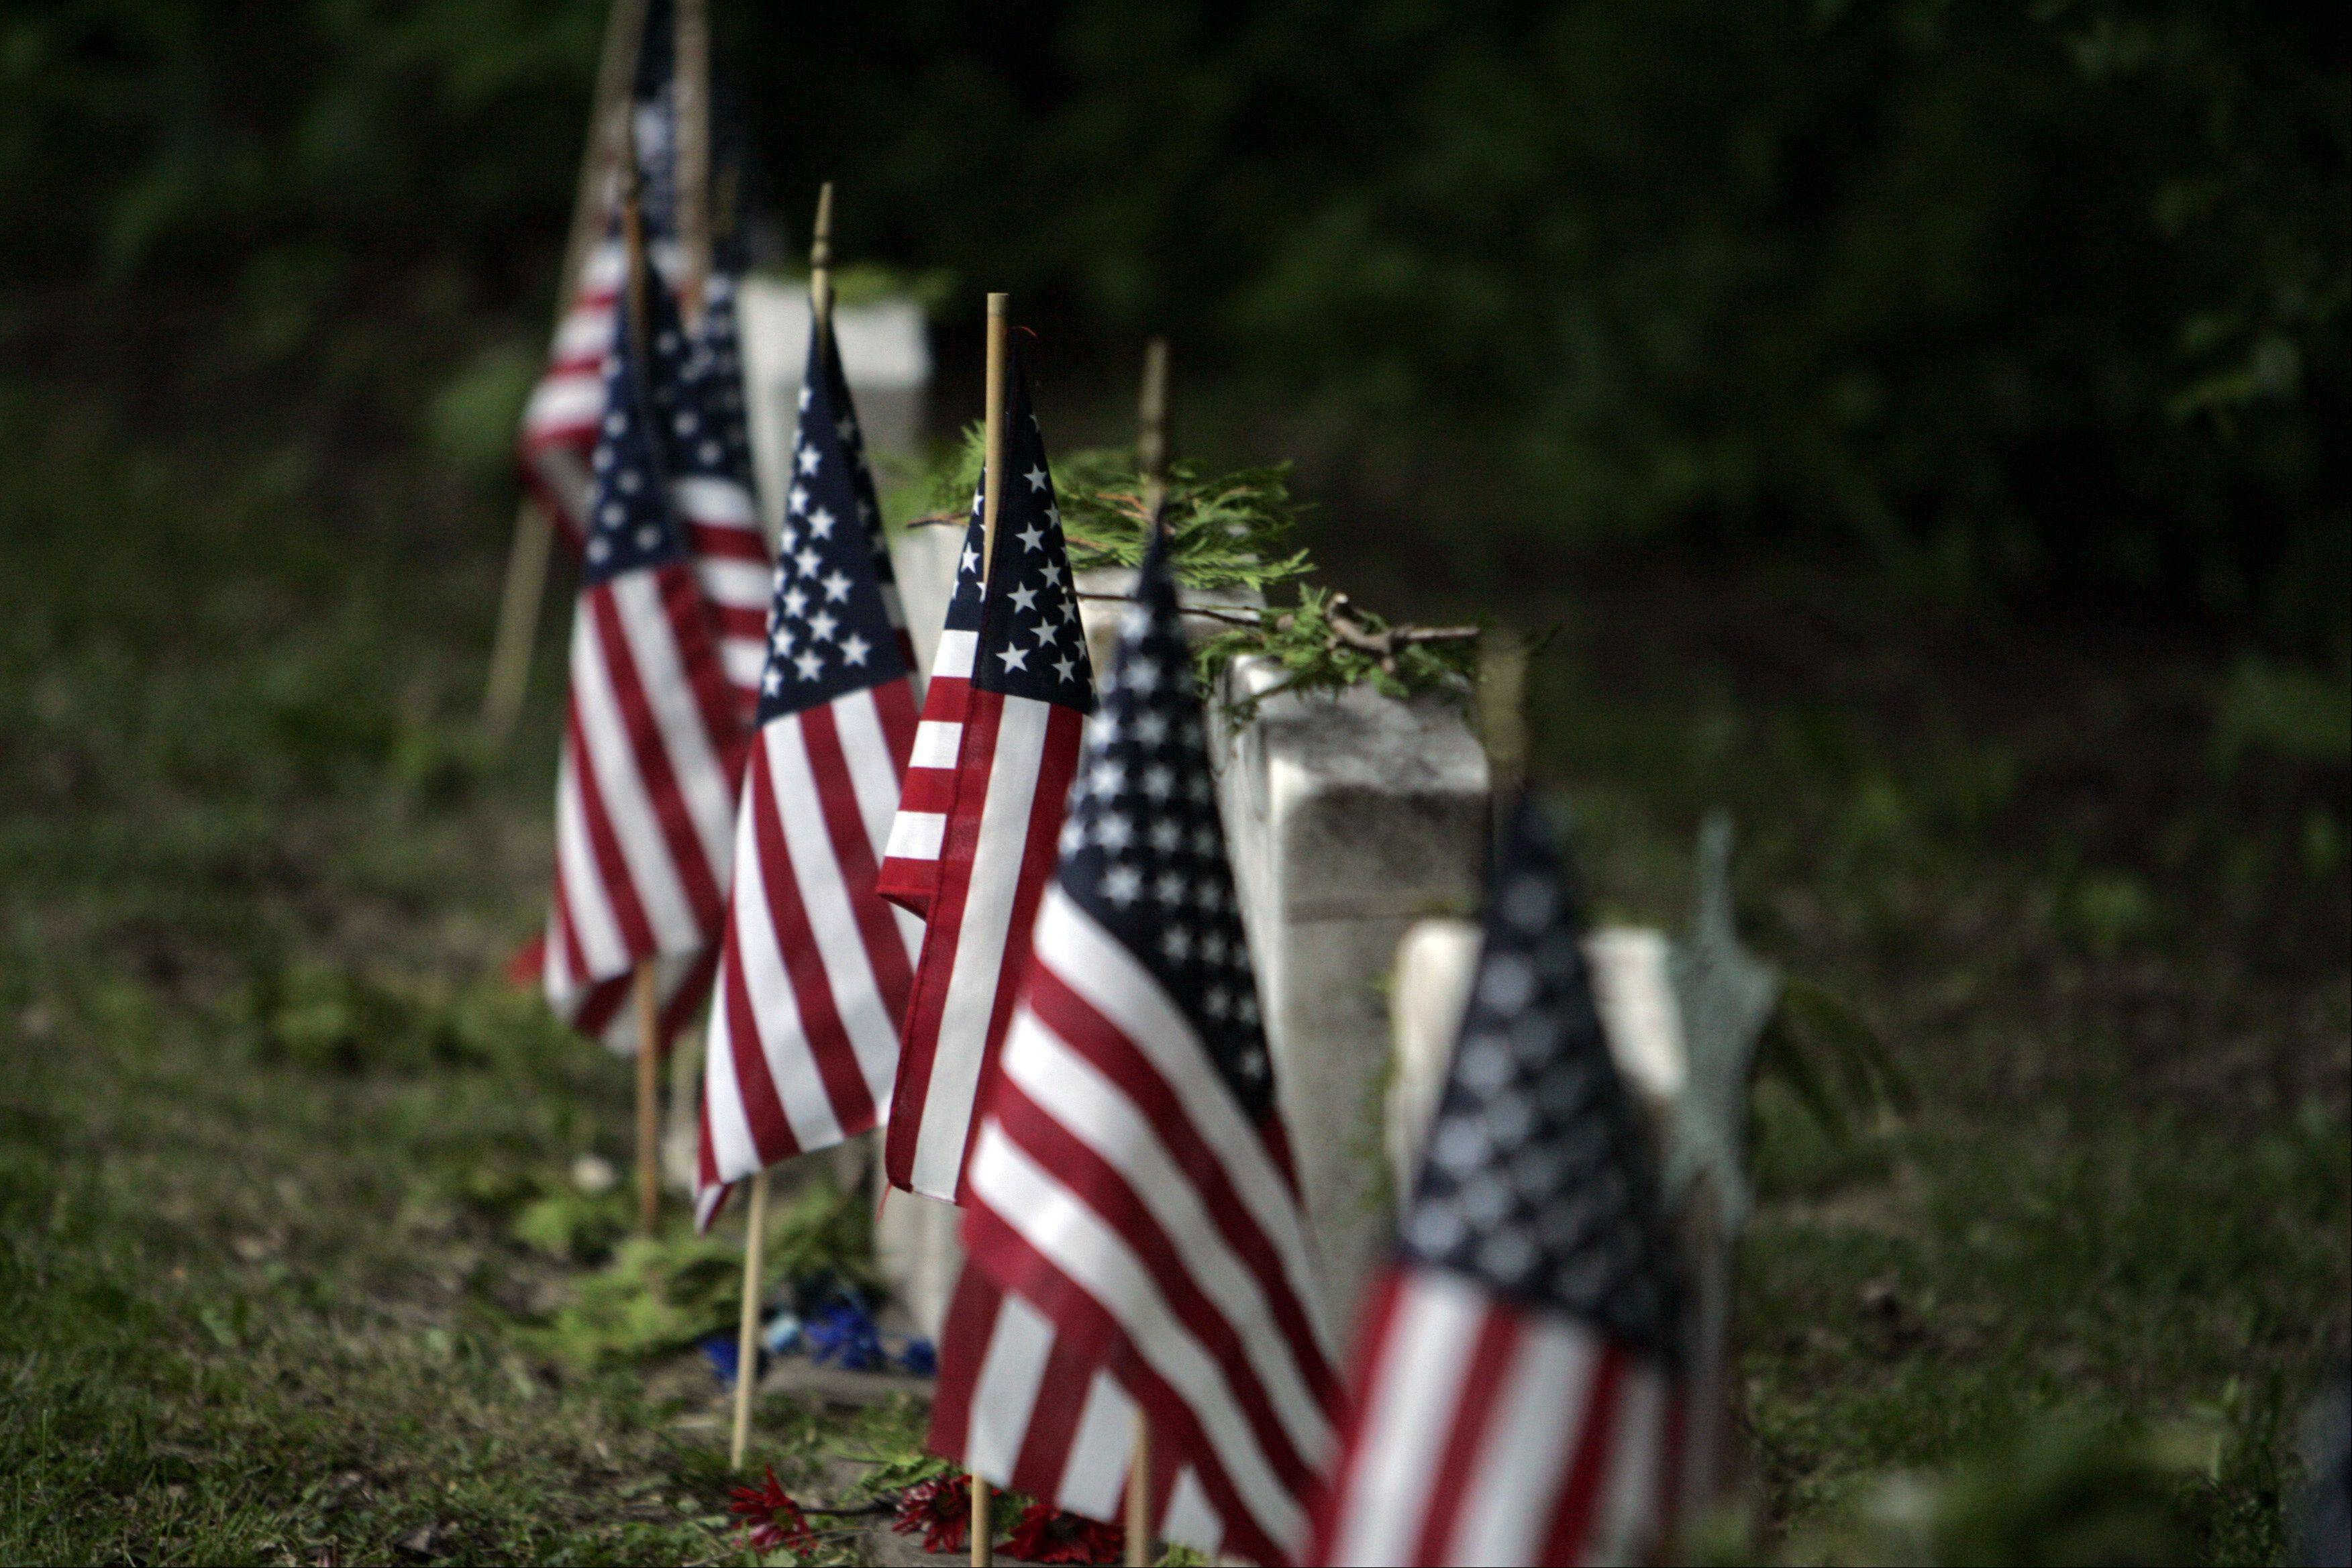 Flags sit along grave sites of past soldiers during the Memorial Day celebration at South Cemetery in St. Charles early Monday morning.